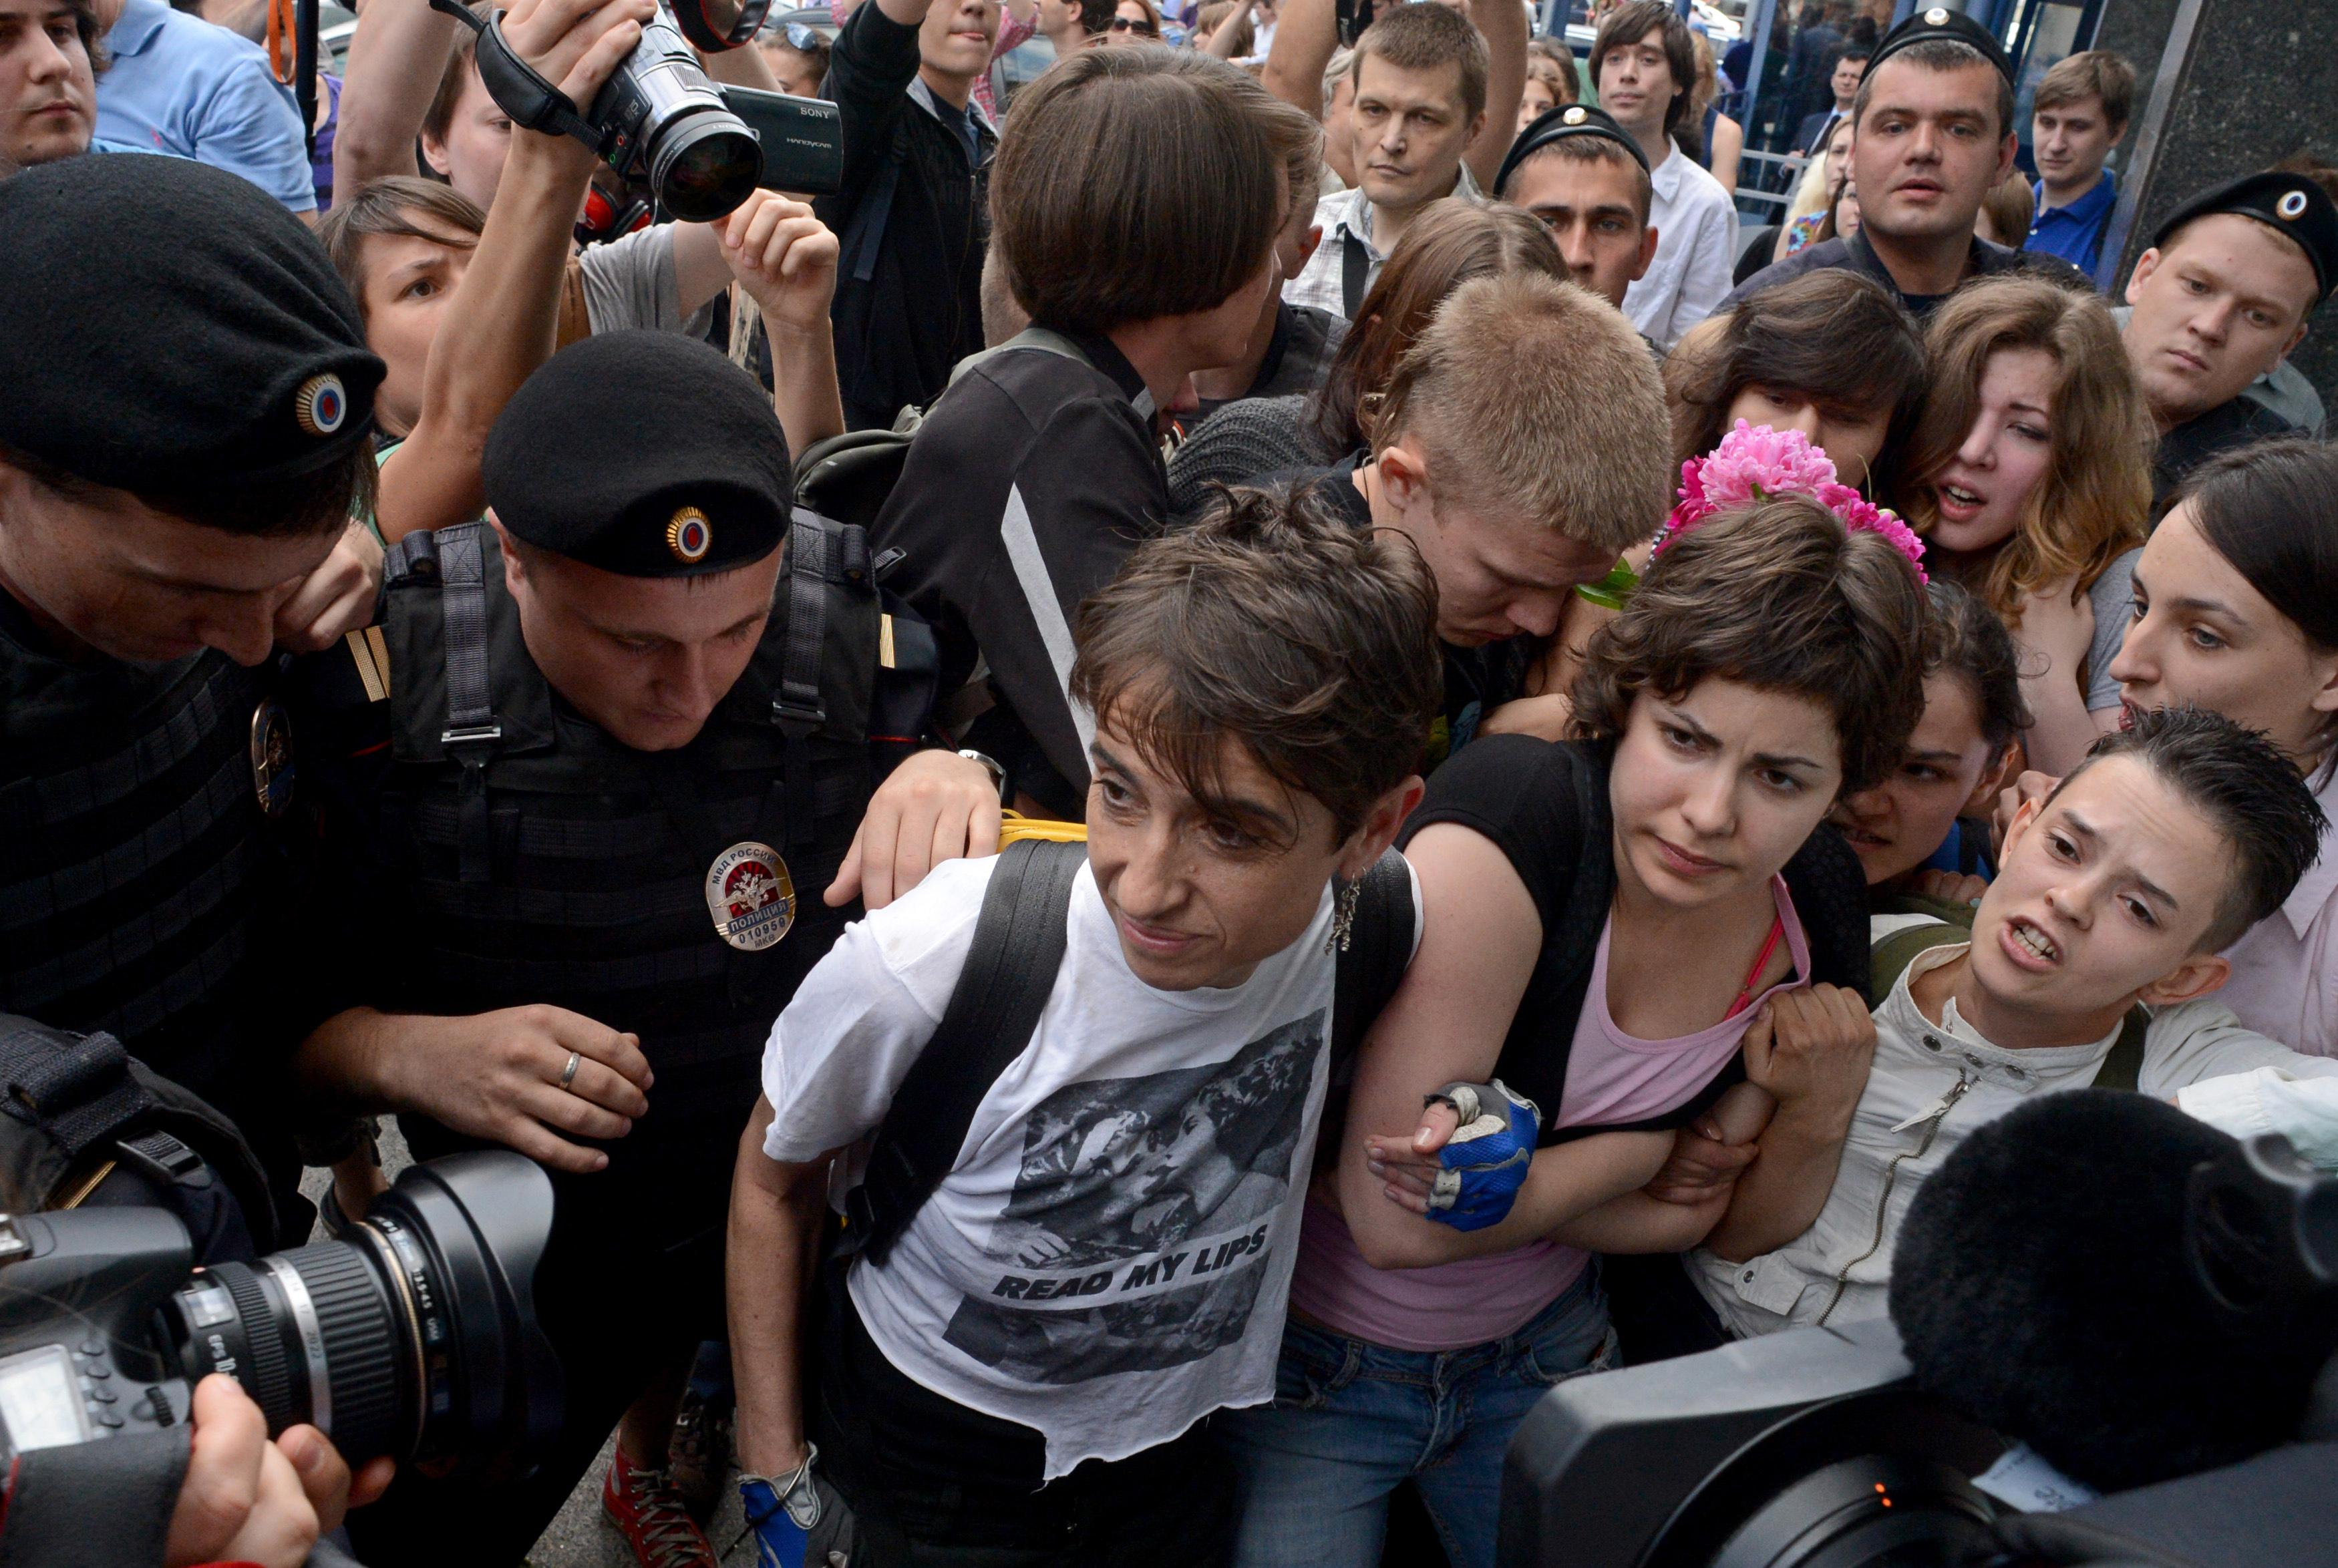 Masha Gessen (center in white T-shirt) and other protestors outside the State Duma, in Moscow, on June 11, 2013.